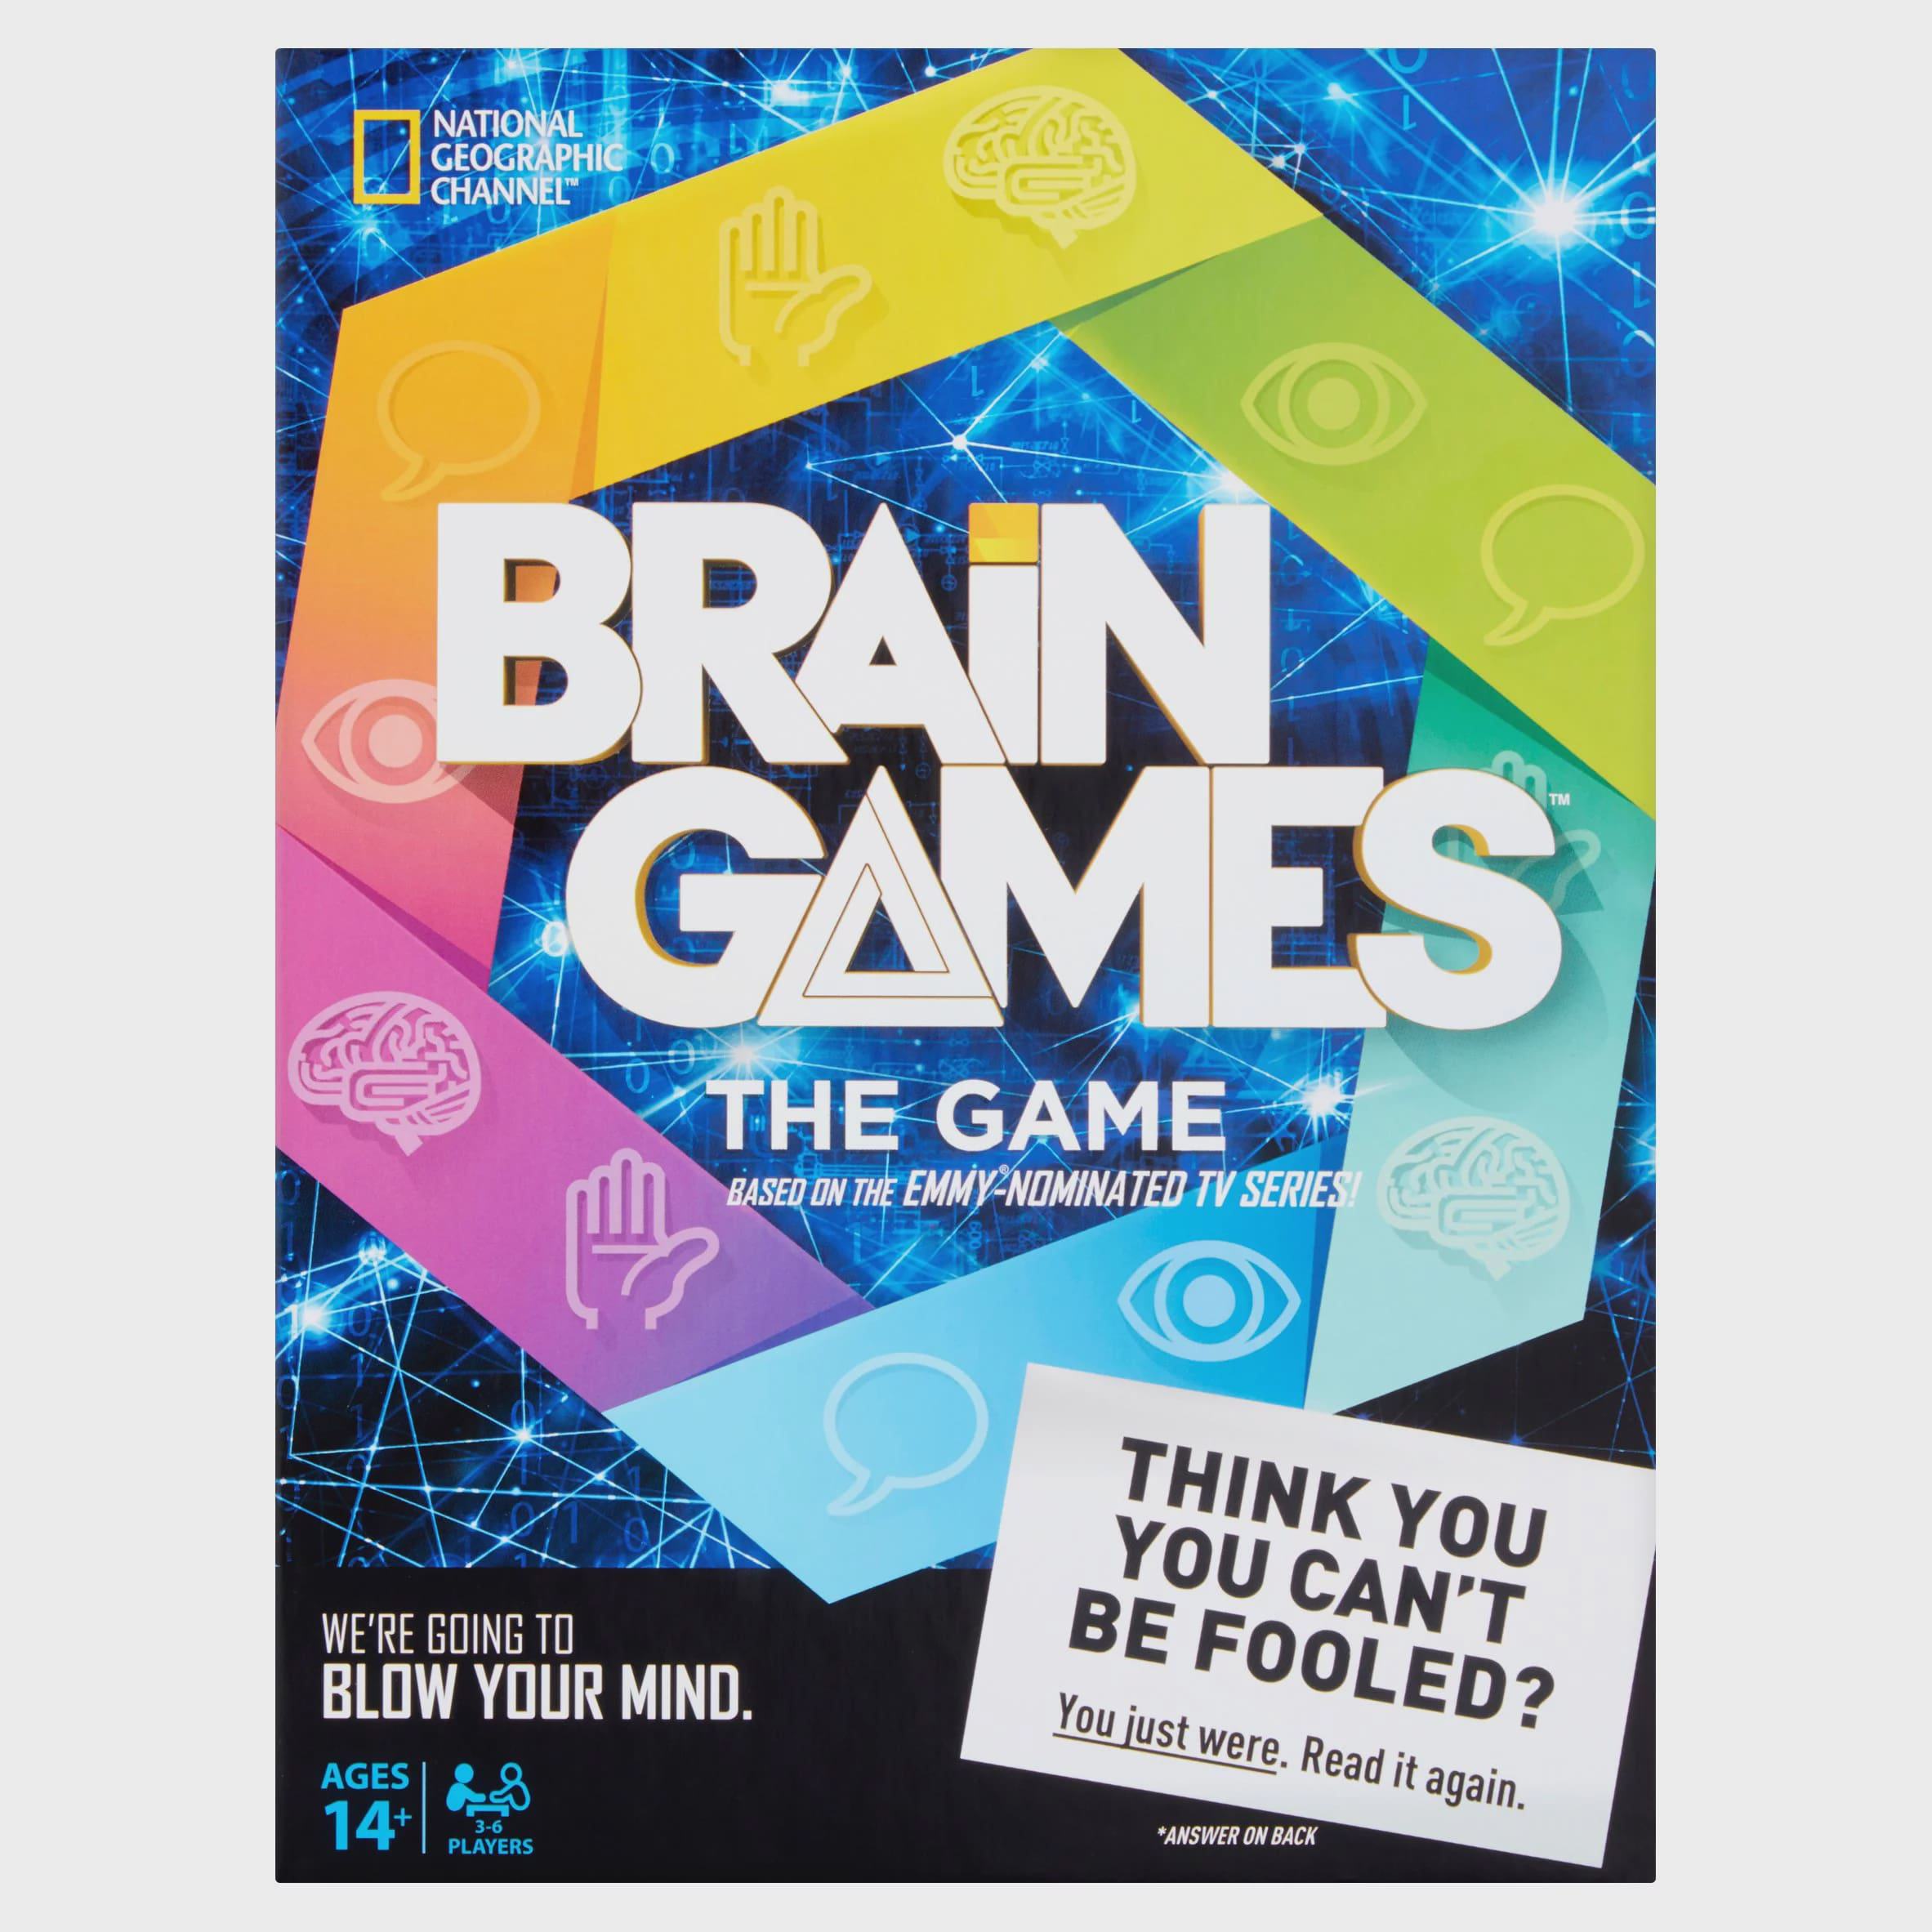 National Geographic Brain Games The Game by Buffalo Games, LLC